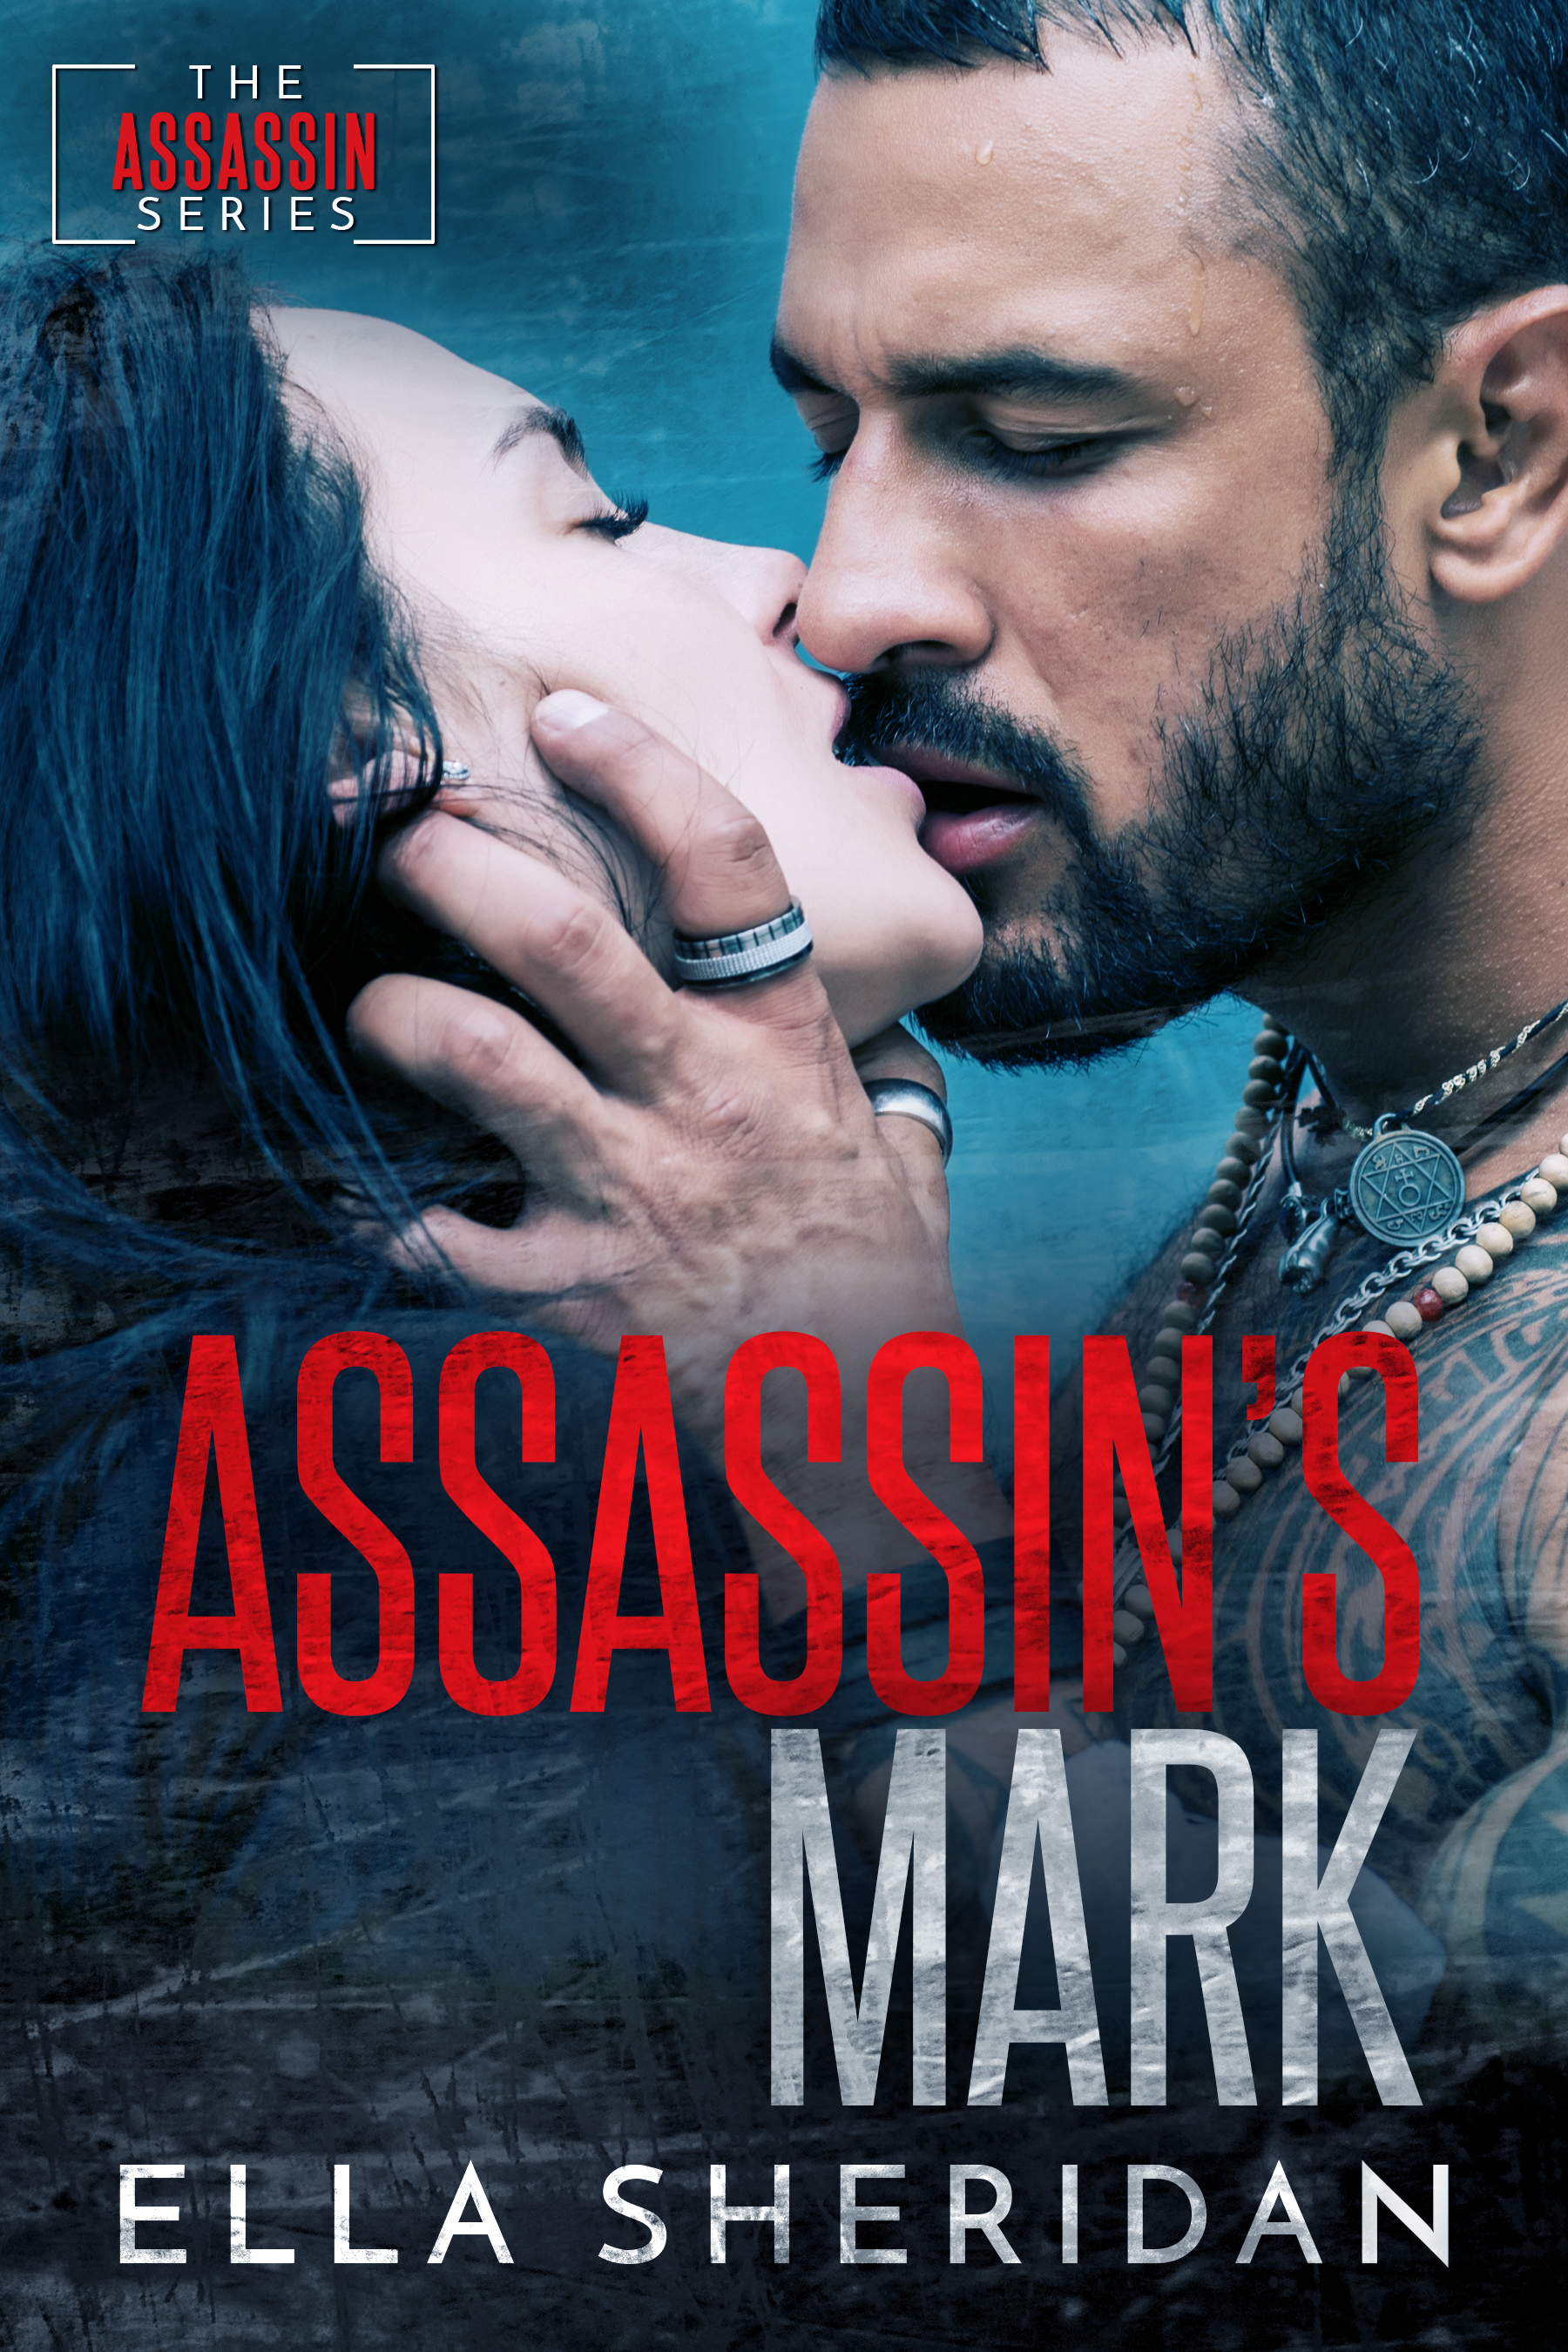 ASSASSIN'S MARK_Cover.jpg